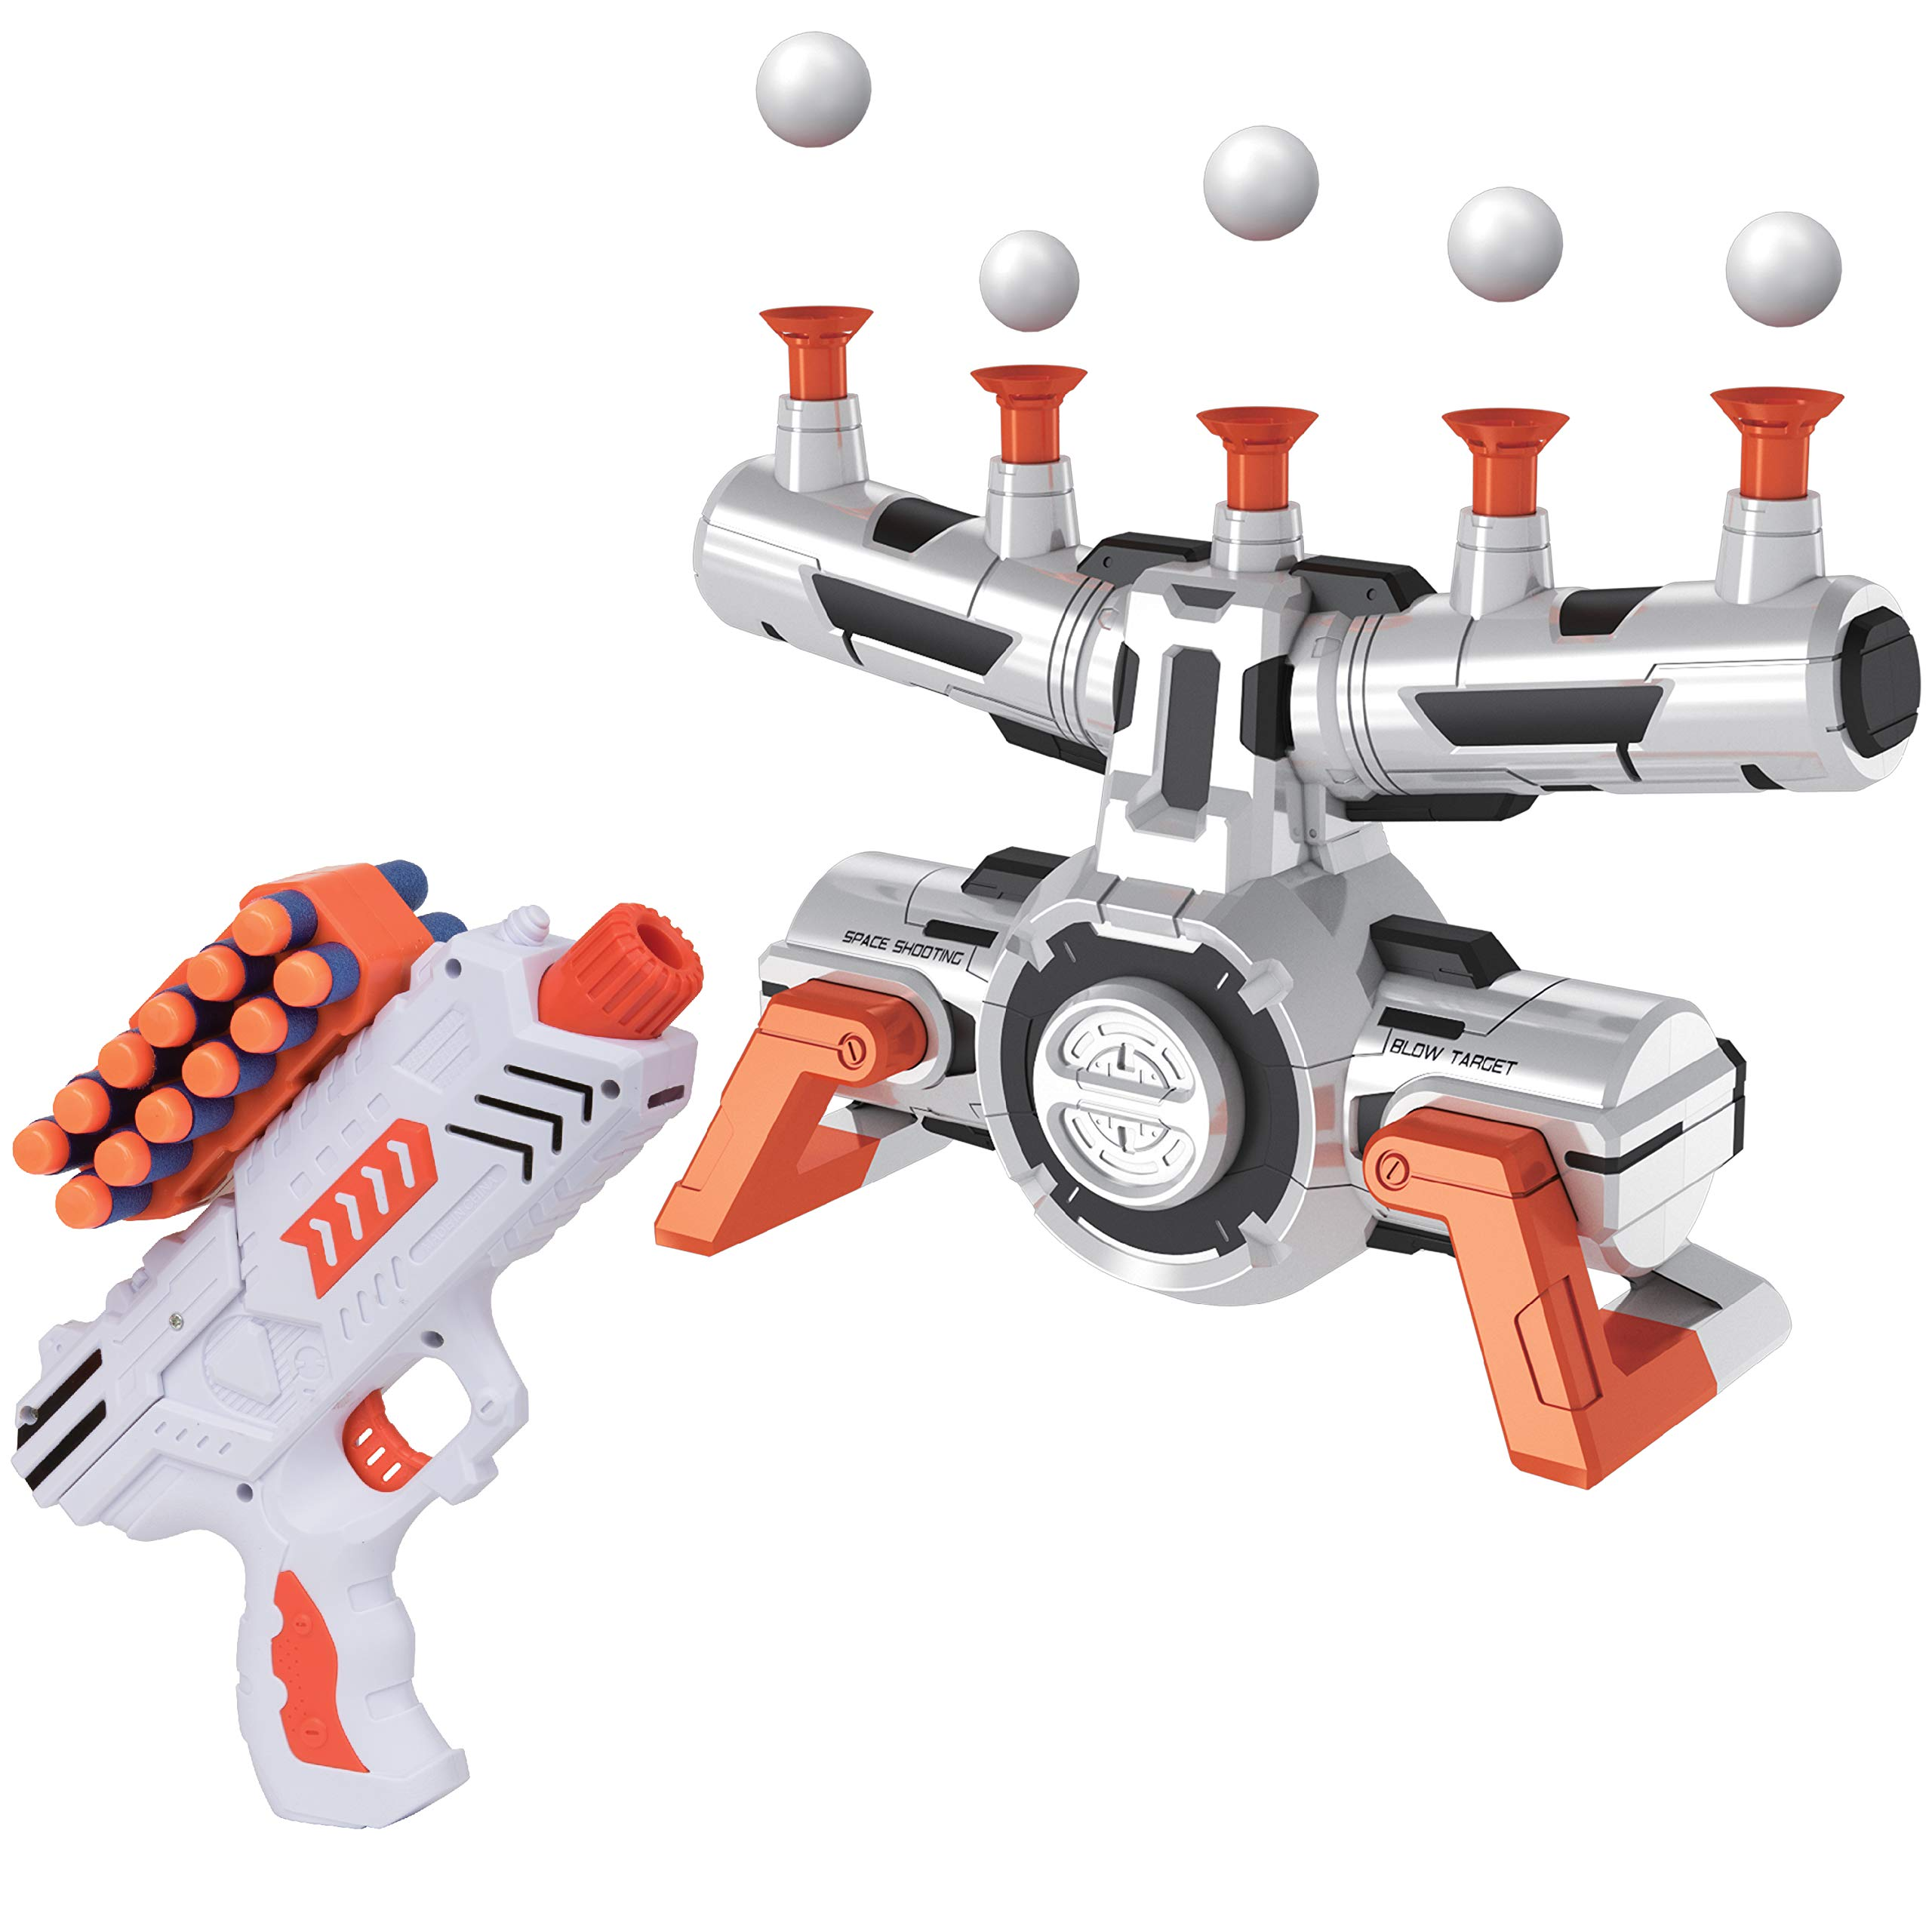 USA Toyz Compatible Nerf Targets for Shooting - AstroShot Zero G Floating Orbs Nerf Target Practice with Blaster Toy Guns for Boys or Girls and Foam Darts by USA Toyz (Image #1)